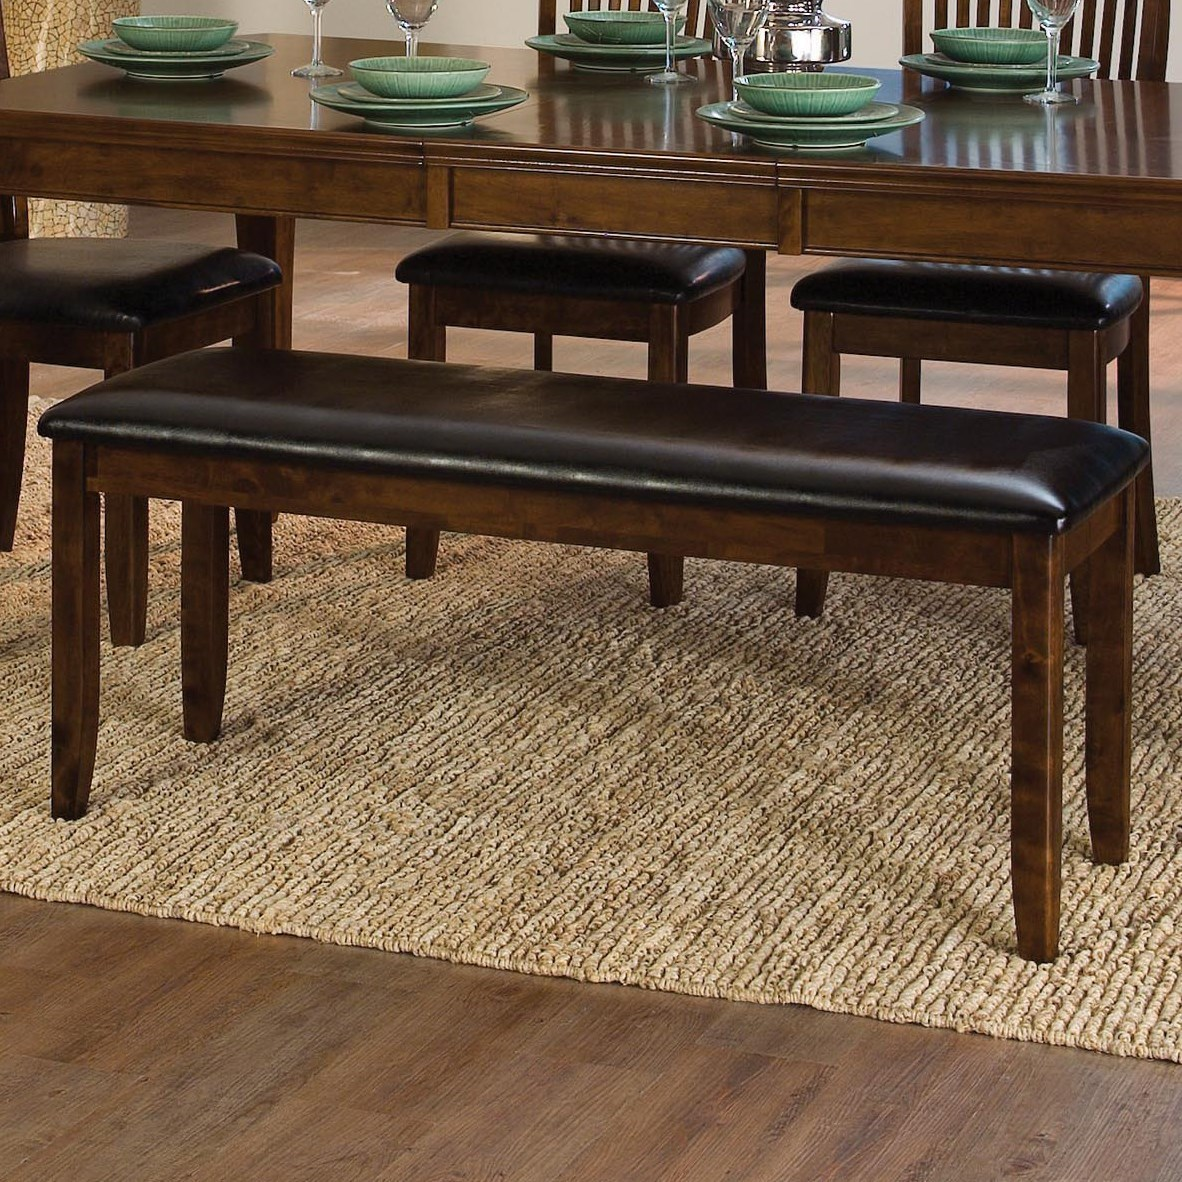 Homelegance Alita Transitional Dining Bench with